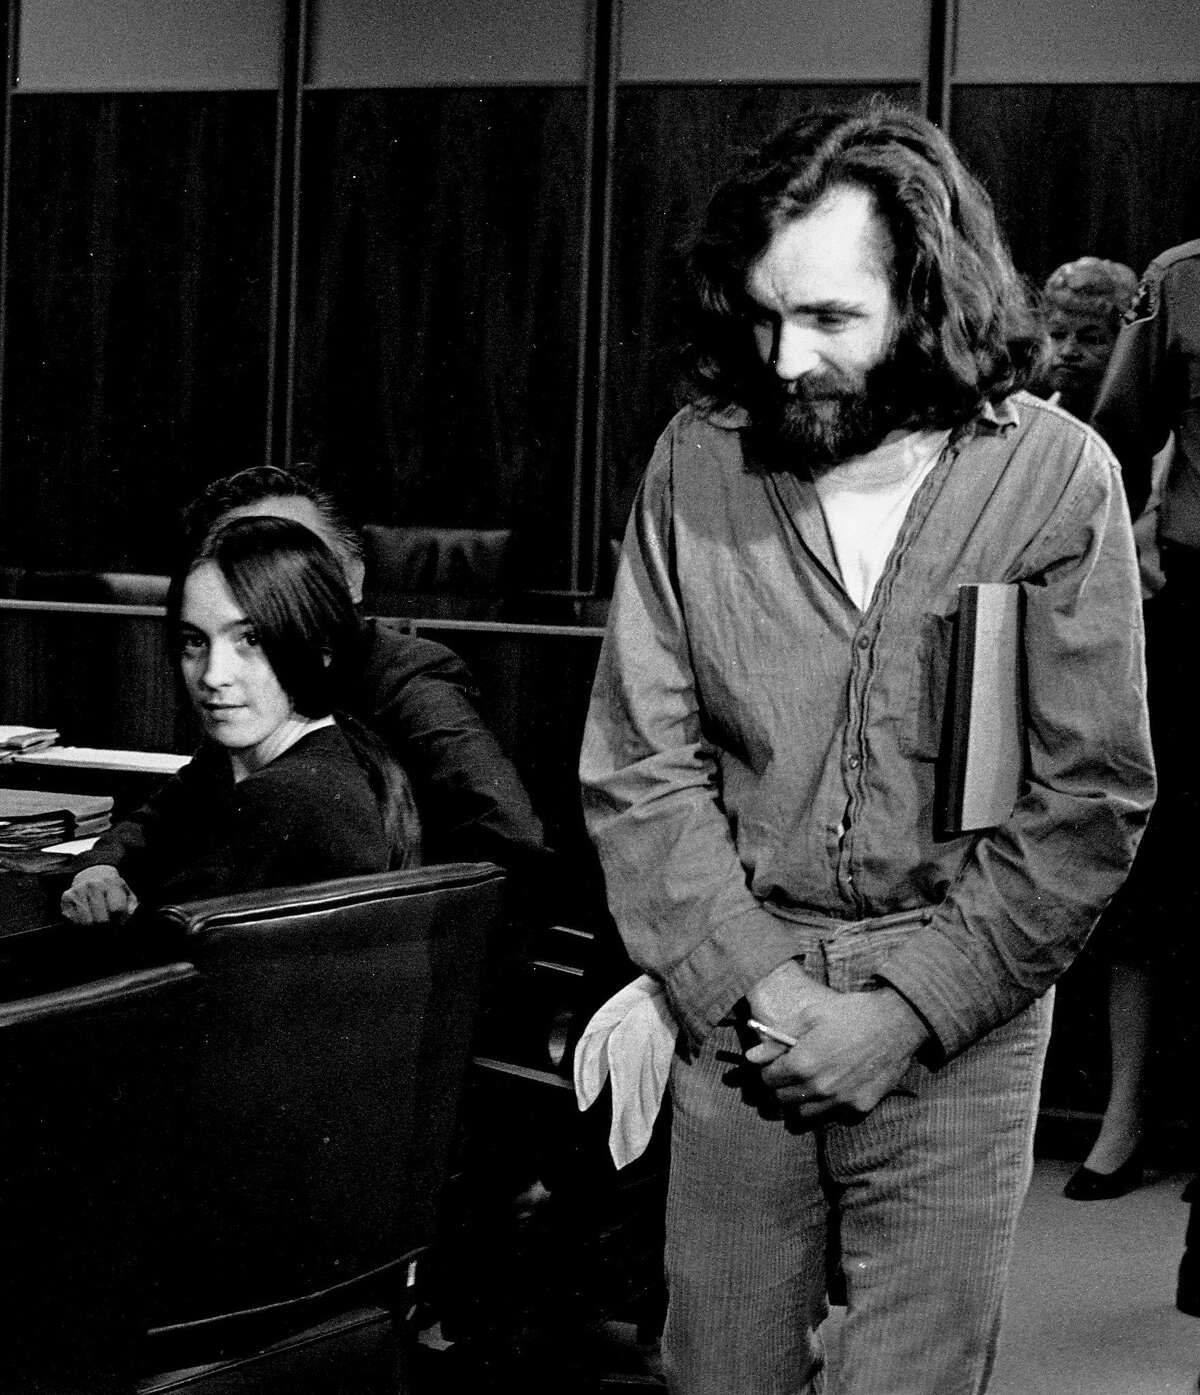 """FILE - In this Oct. 13,1970 file photo, cult leader Charles Manson walks into the courtroom as Susan Atkins, a member of his family of followers, looks on in Santa Monica, Calif. A marriage license has been issued for Manson to wed 26-year-old Afton Elaine Burton, who left her Midwestern home nine years ago and moved to Corcoran, California to be near him. Burton, who goes by the name """"Star,"""" told the AP that she and Manson will be married next month. (AP Photo/File)"""